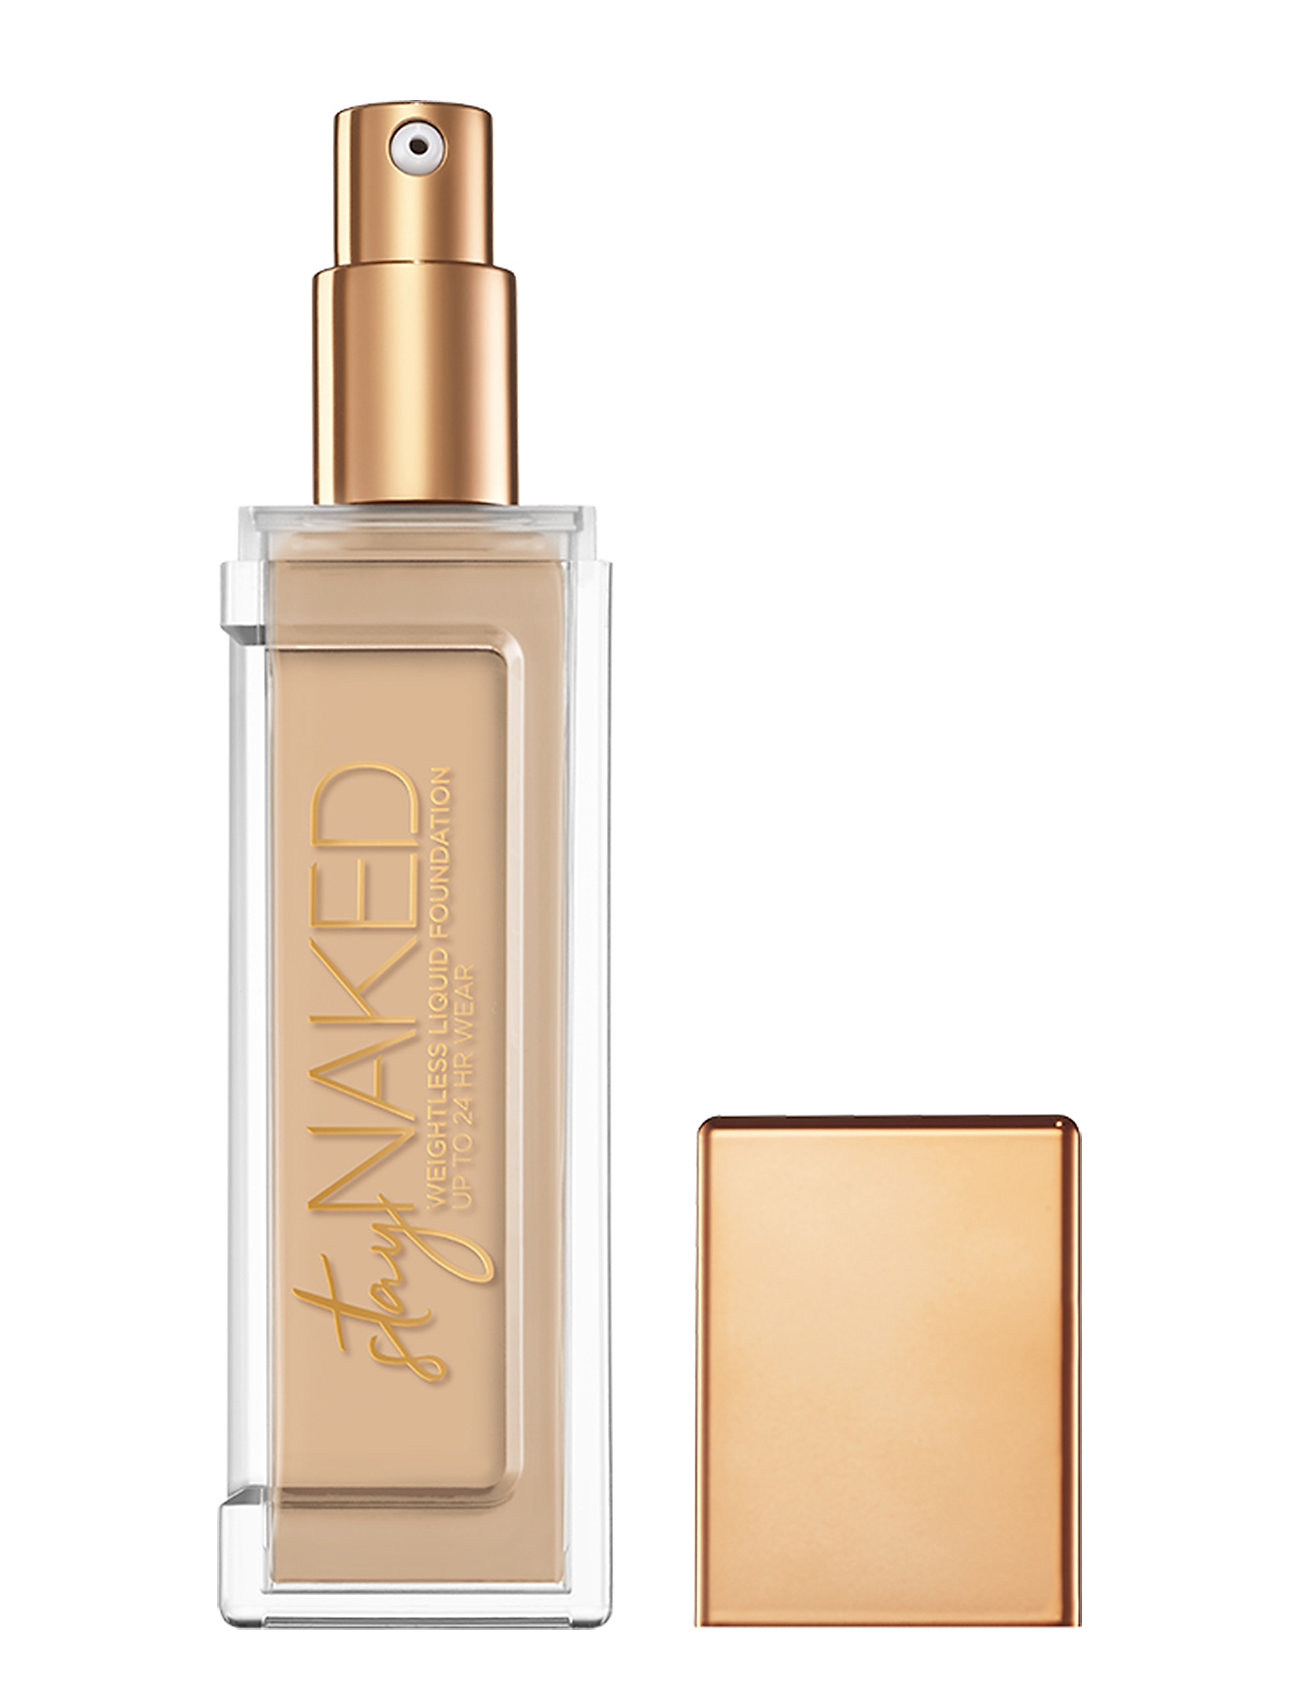 Image of Stay Naked Longwear Foundation Foundation Makeup Urban Decay (3403742891)